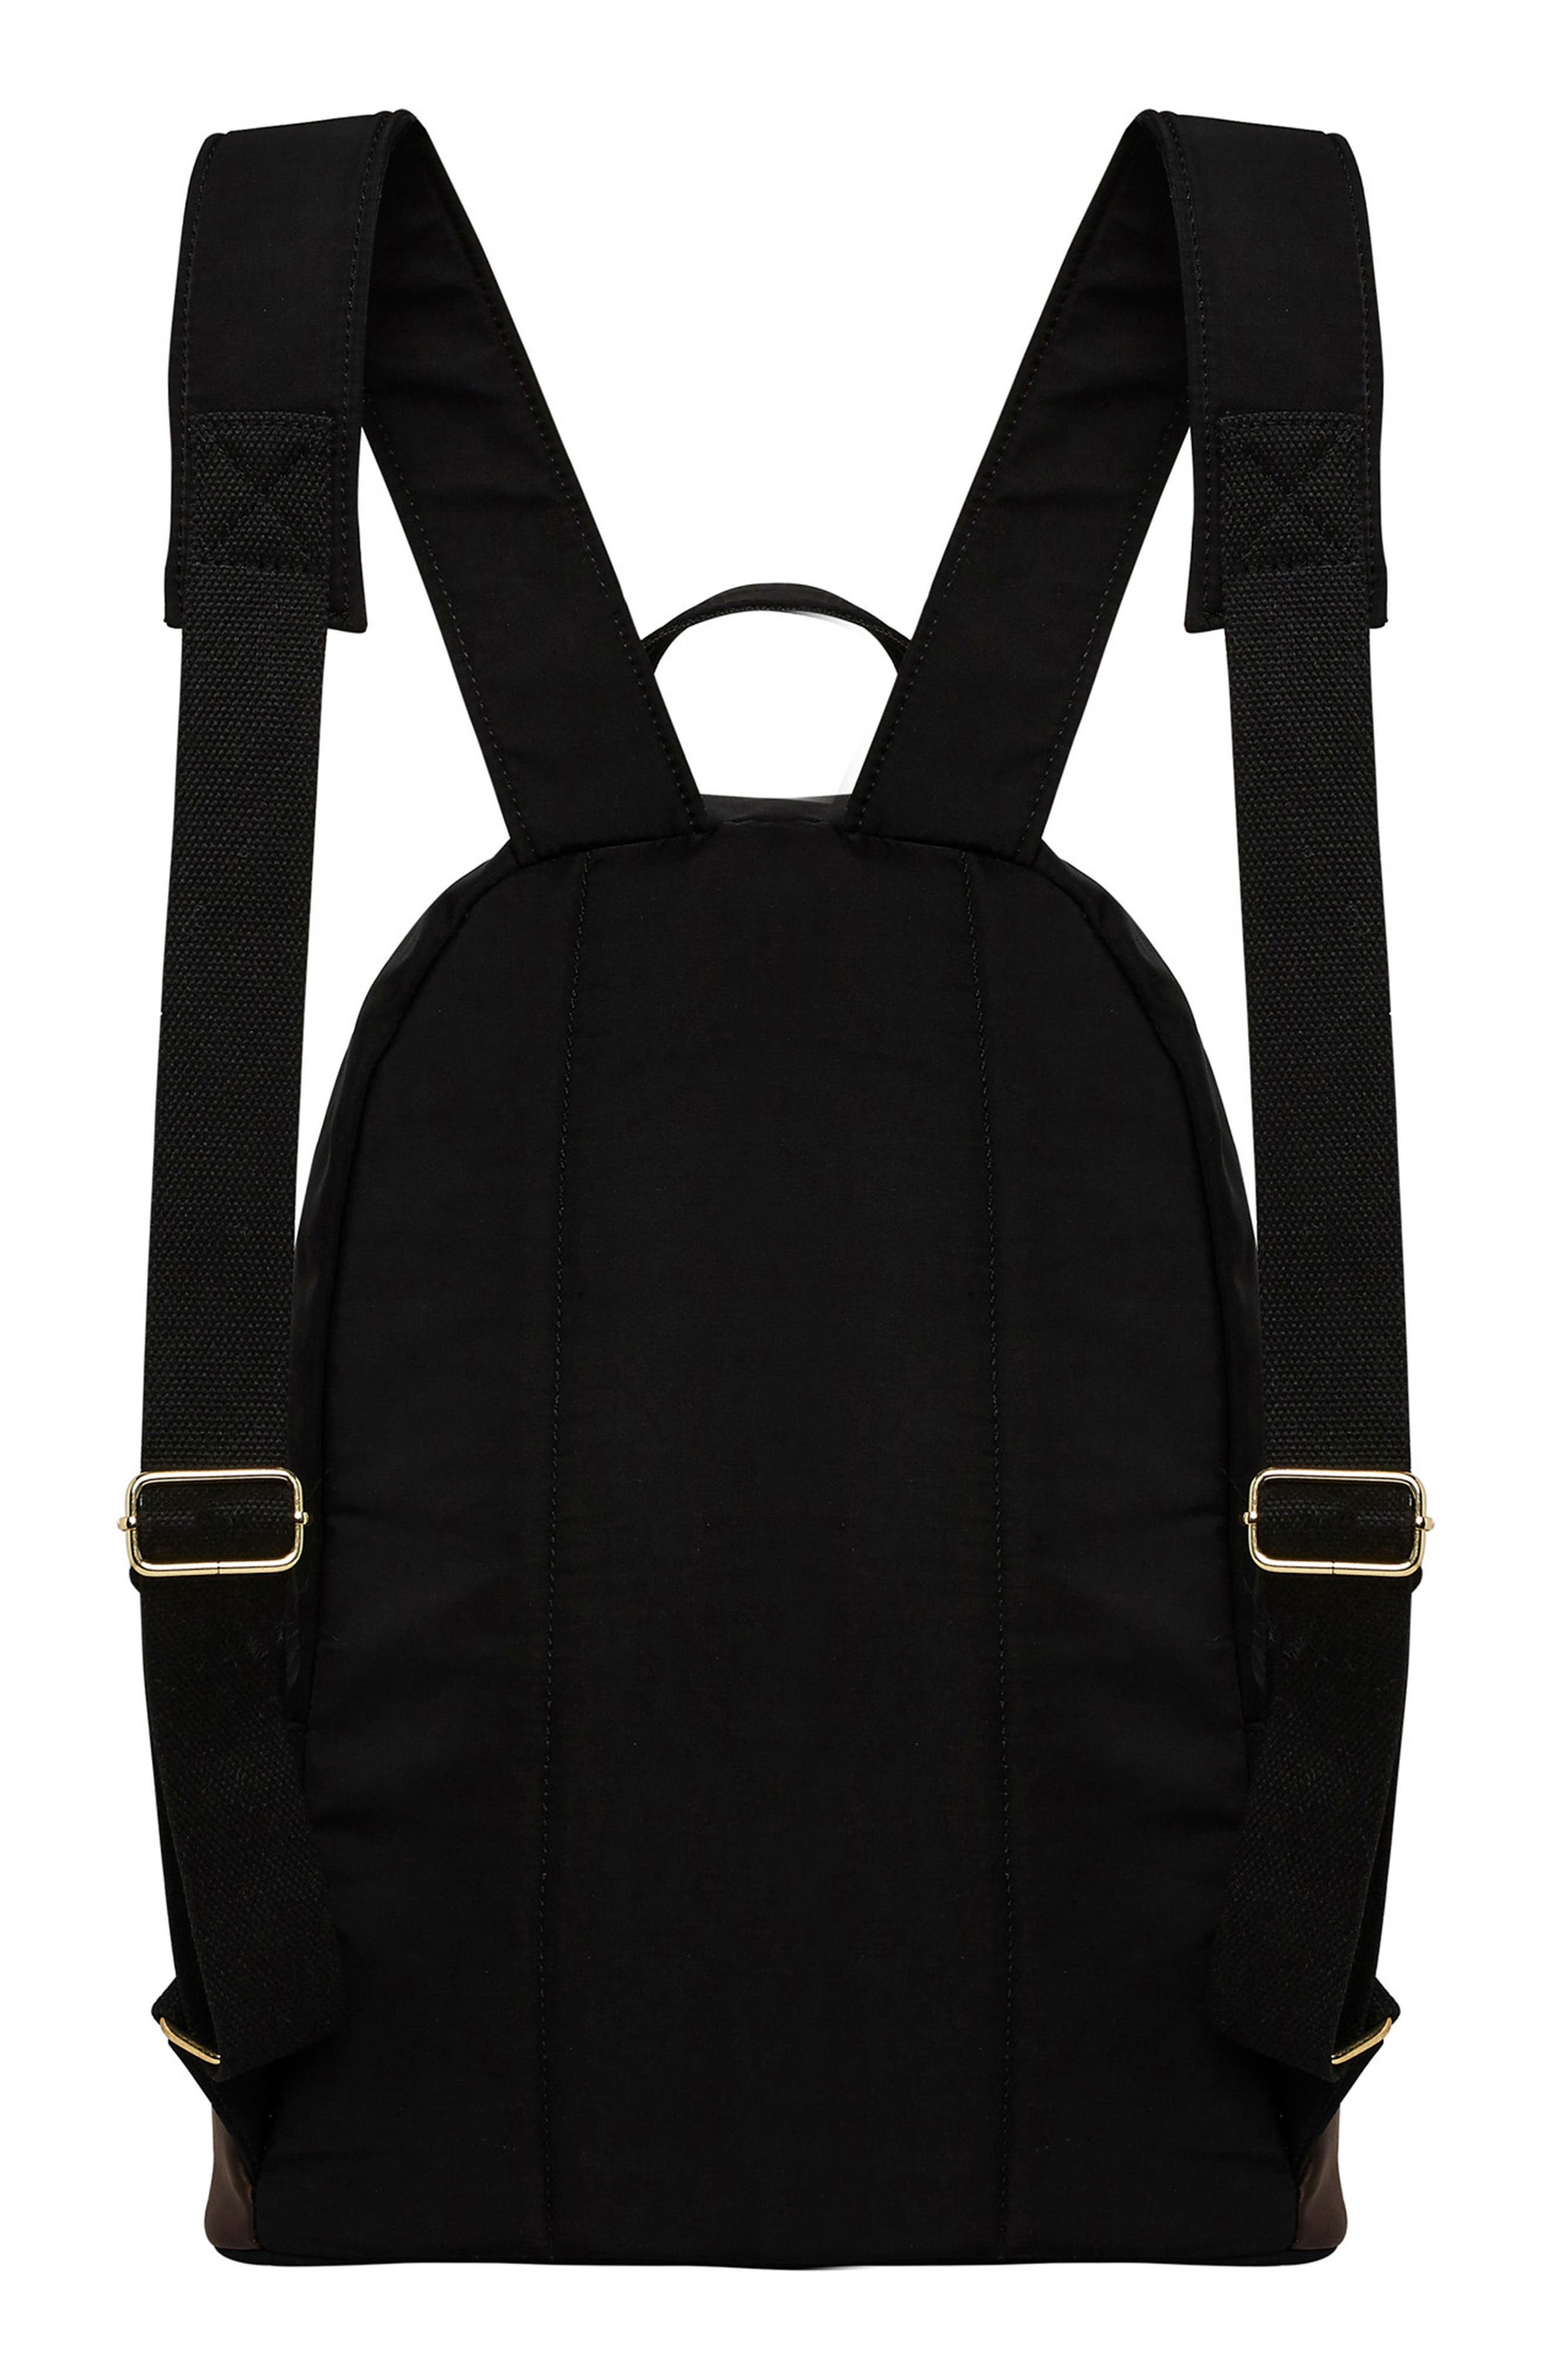 Own Beat Vegan Leather Backpack,                             Alternate thumbnail 2, color,                             001